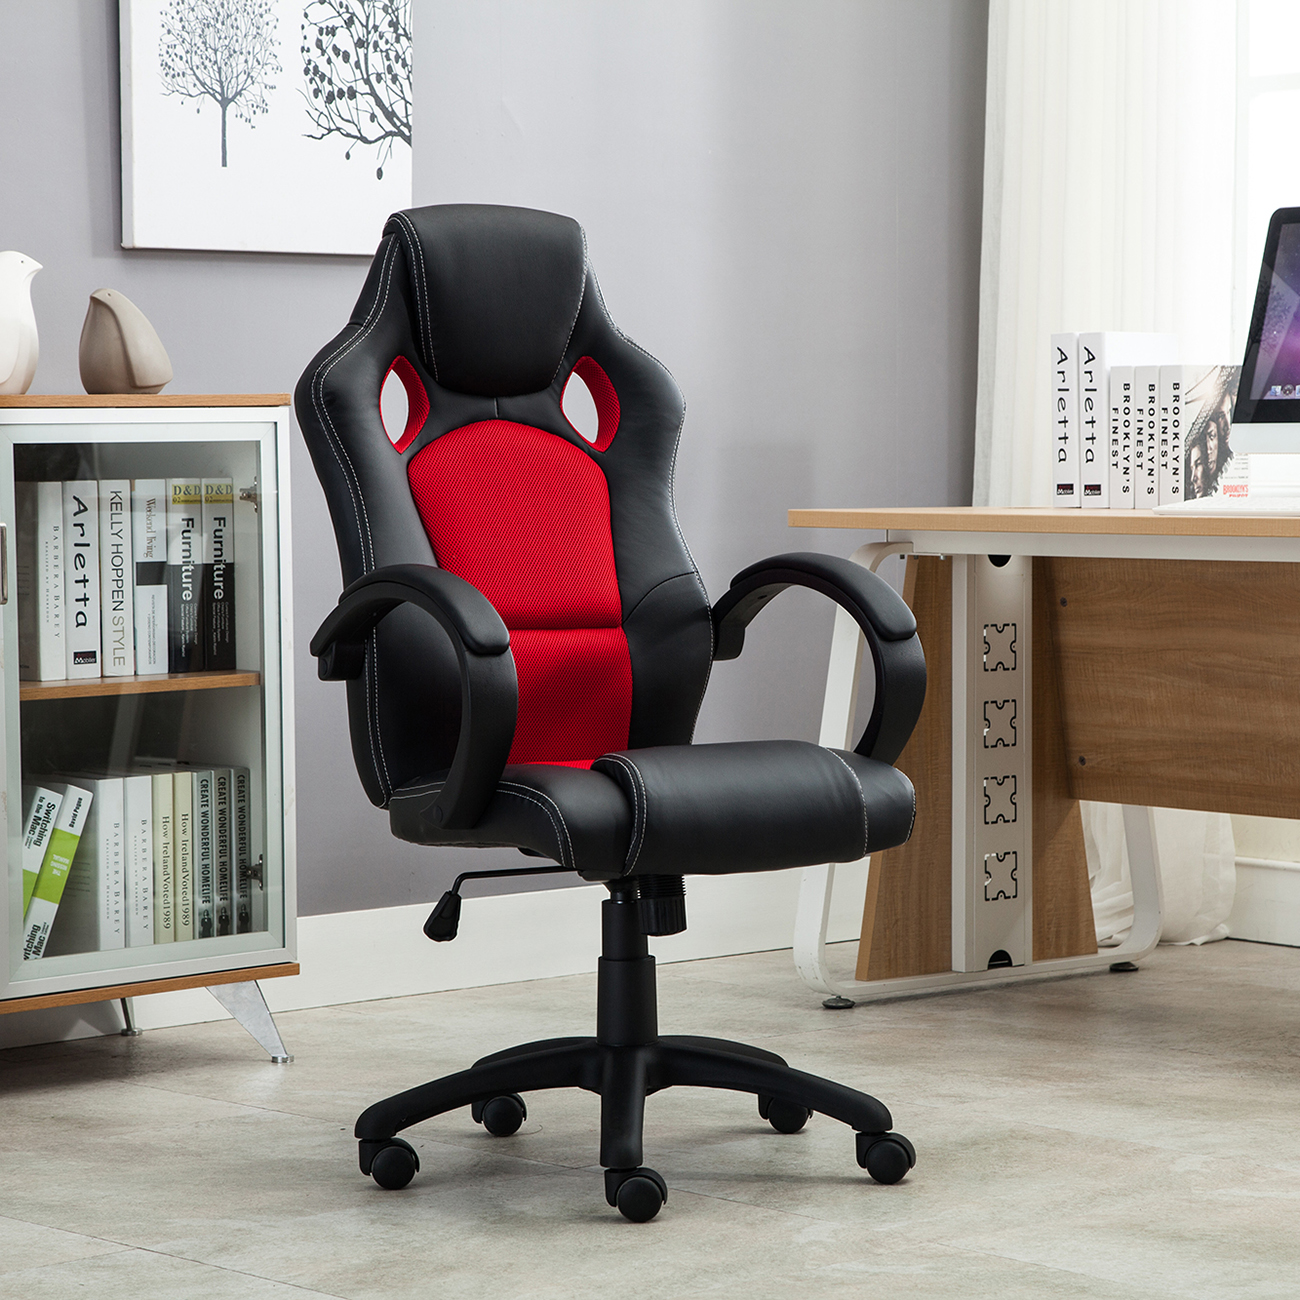 Desk Seat Details About Executive Racing Office Chair Pu Leather Swivel Computer Desk Seat High Back Red